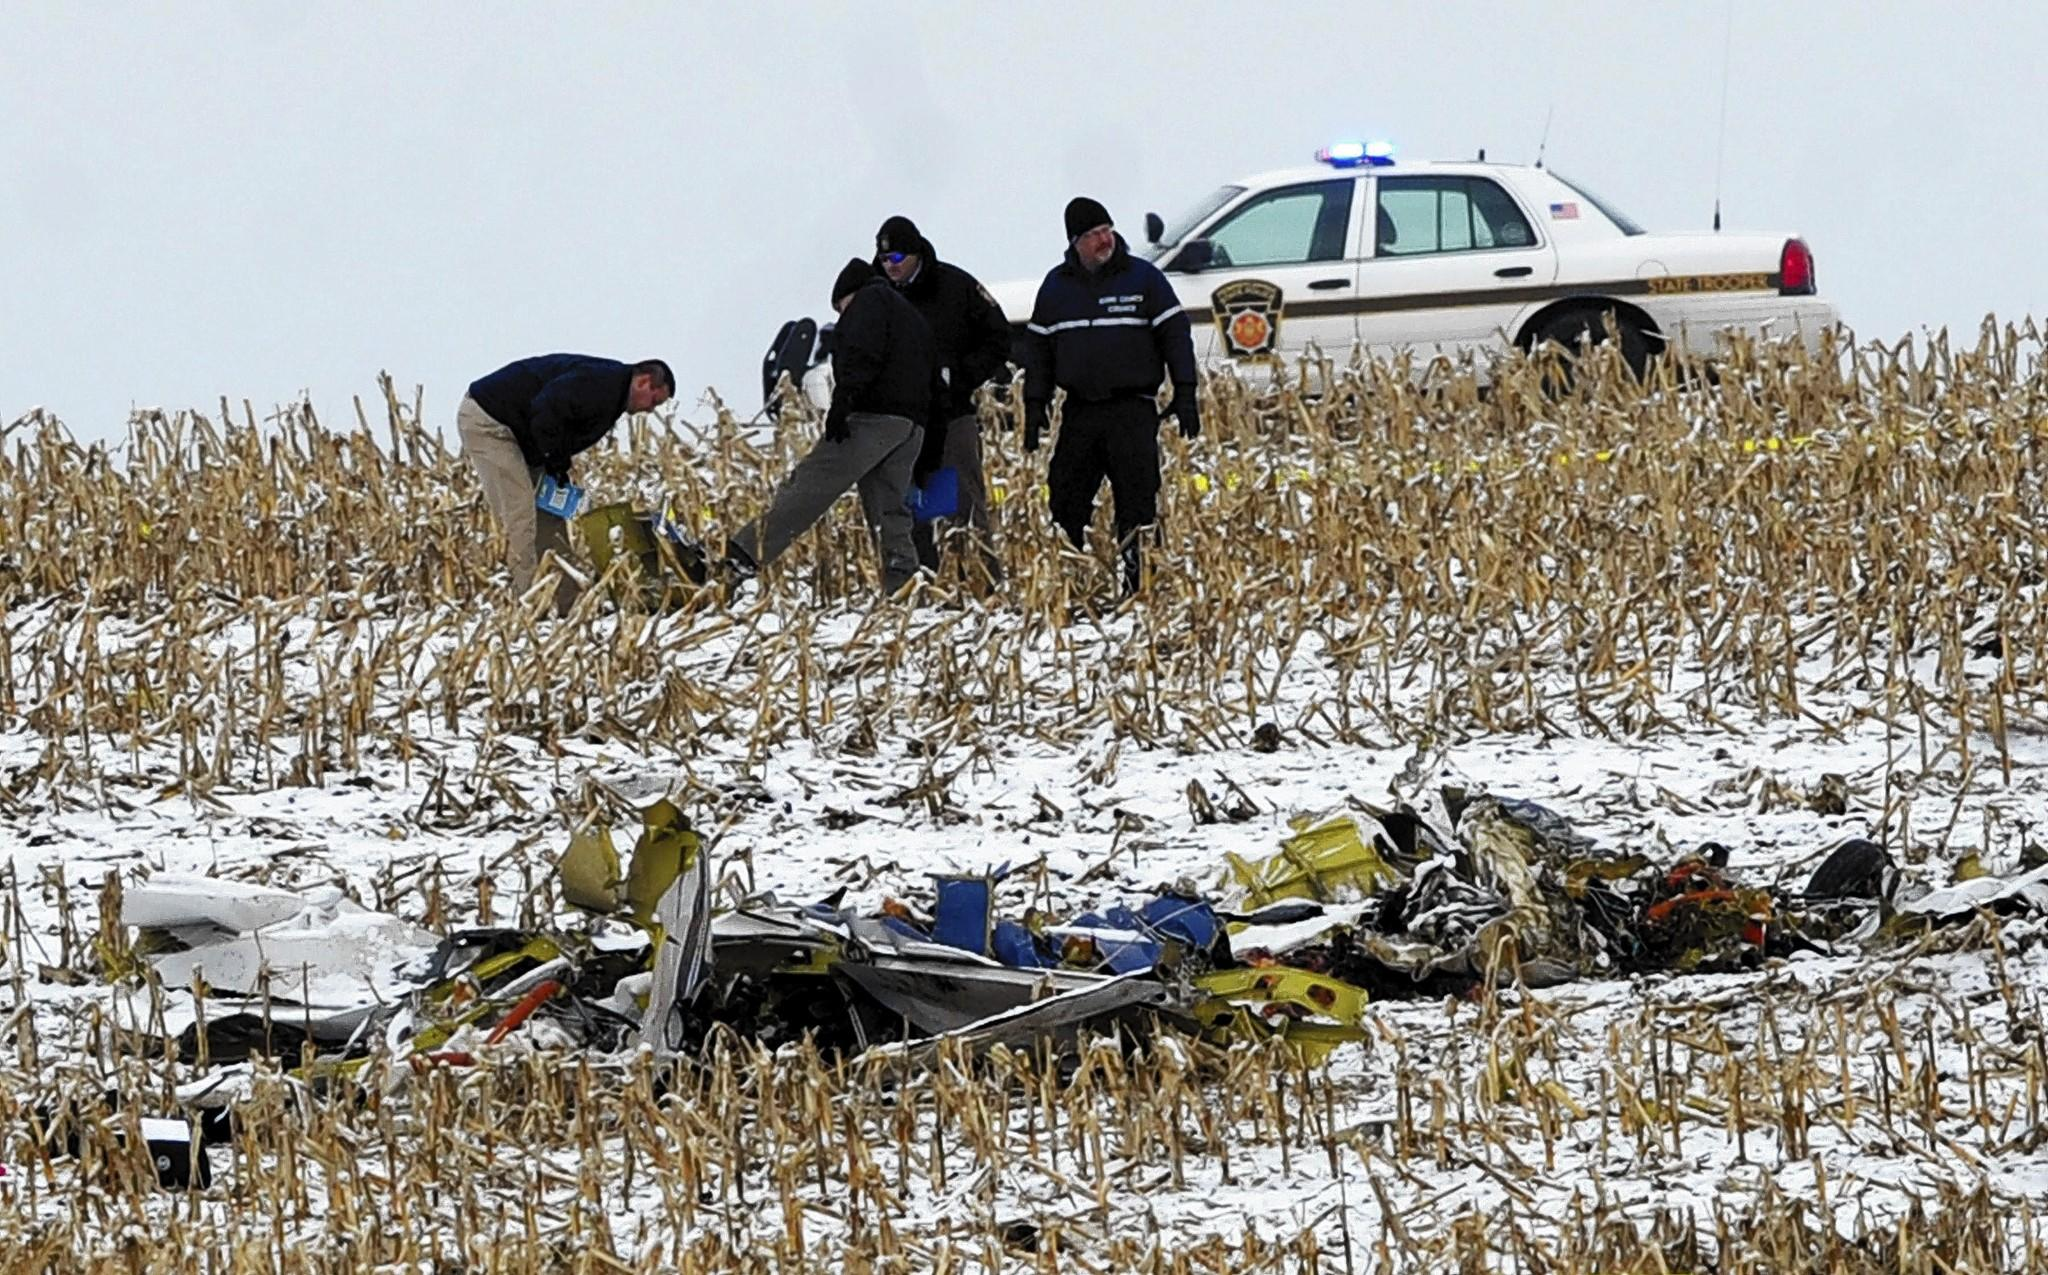 A reported plane crash is investigated in a Butler Township cornfied on Thursday, Dec. 26, 2013.